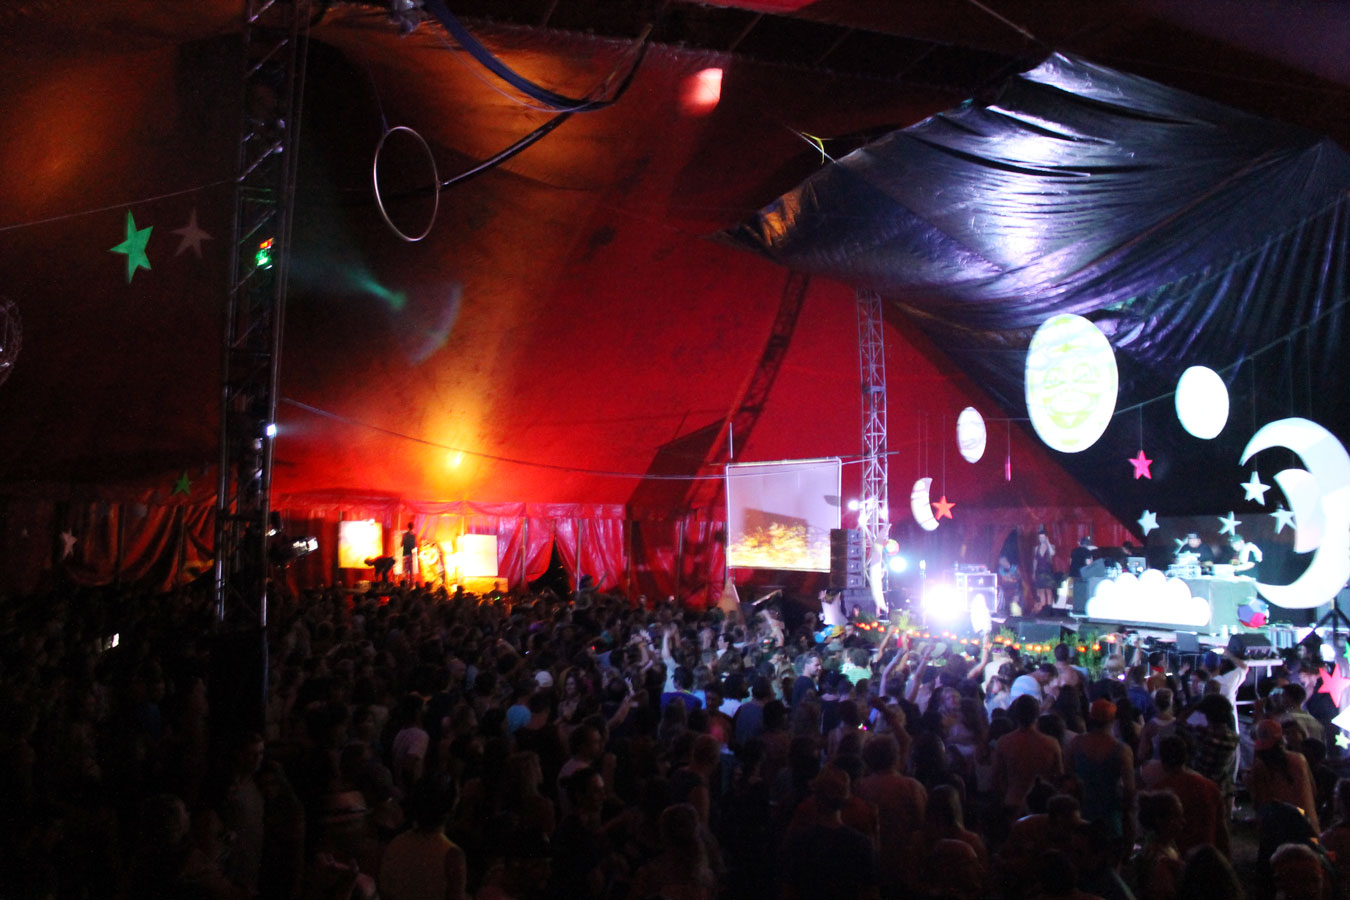 Stage_12(tent1)